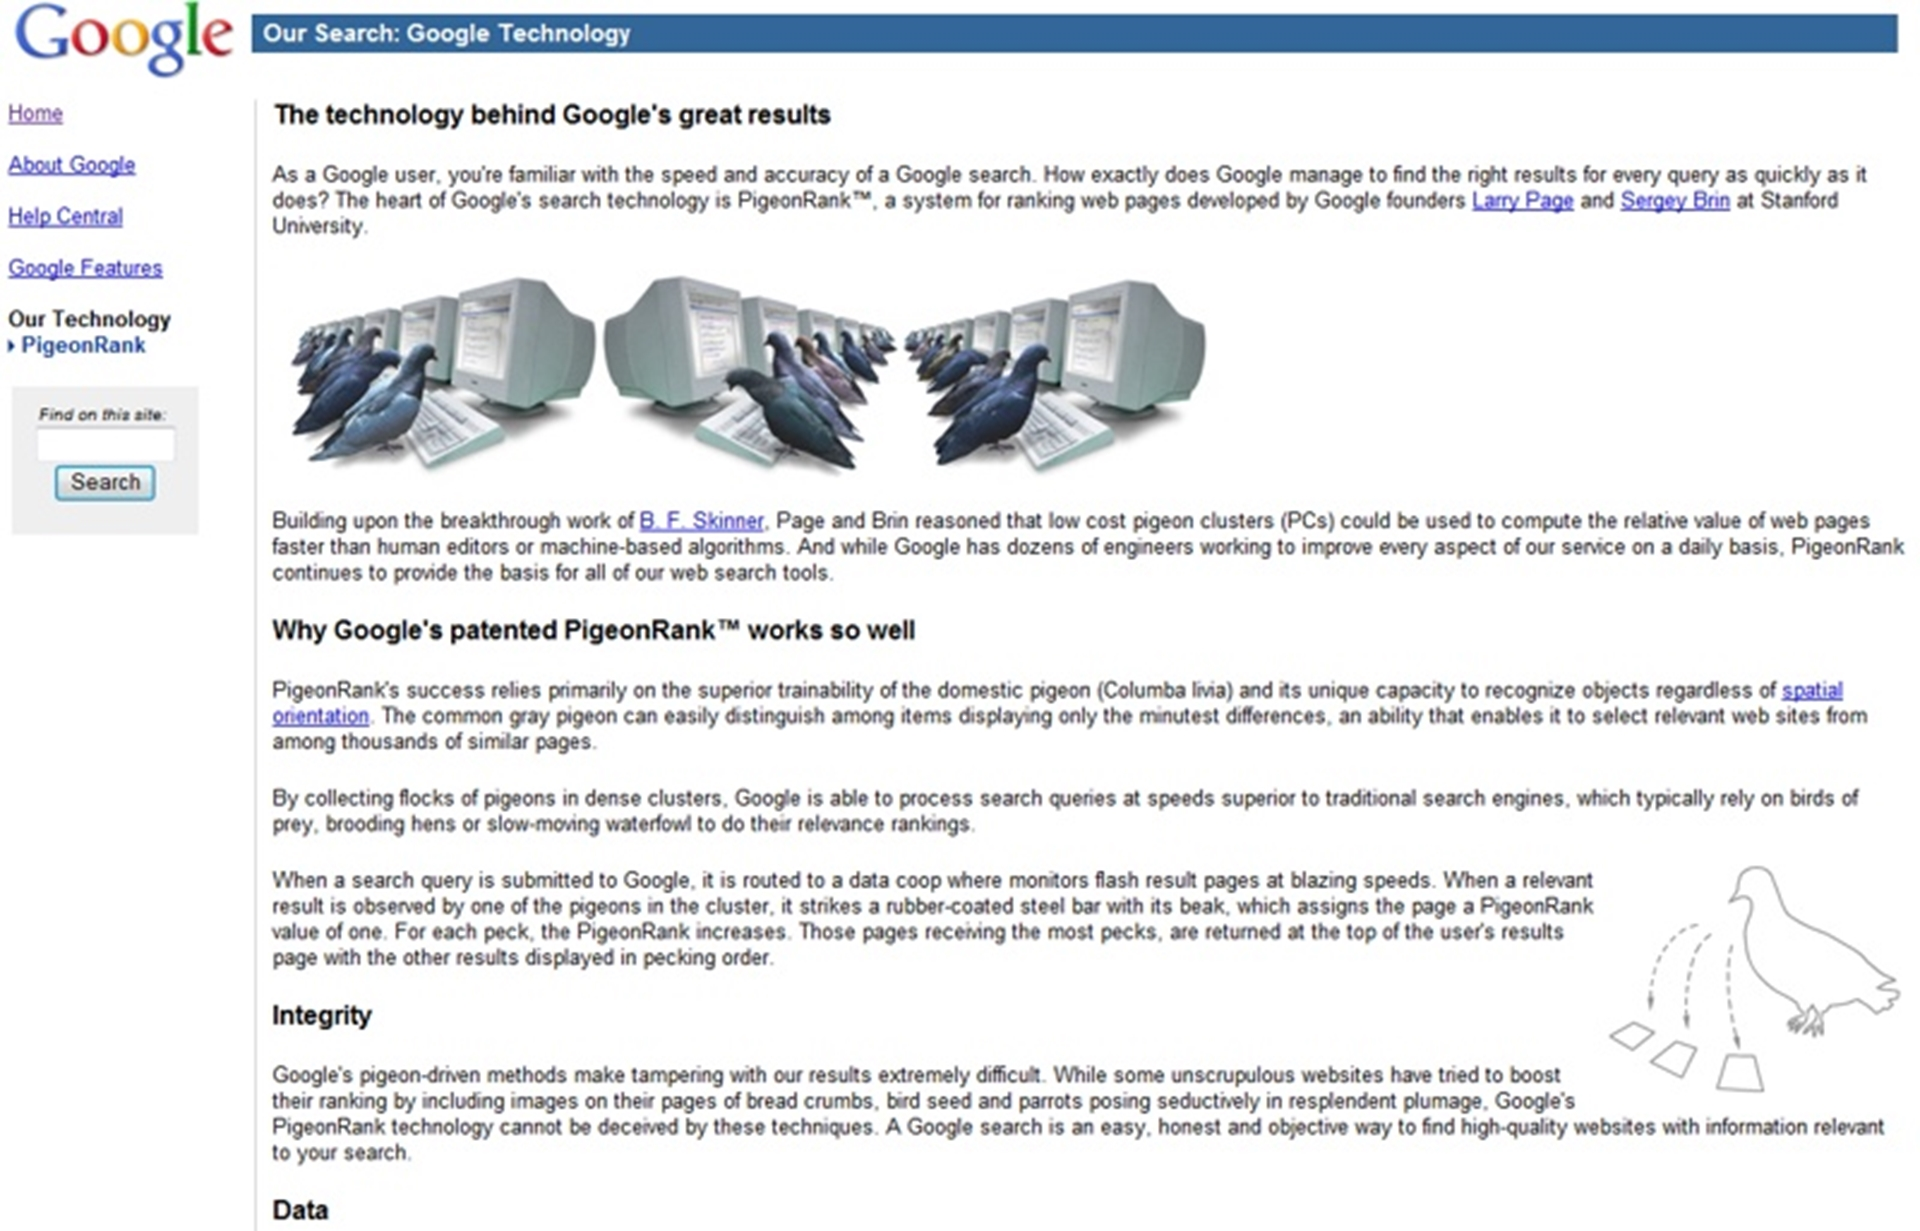 Google April Fools Joke 2002